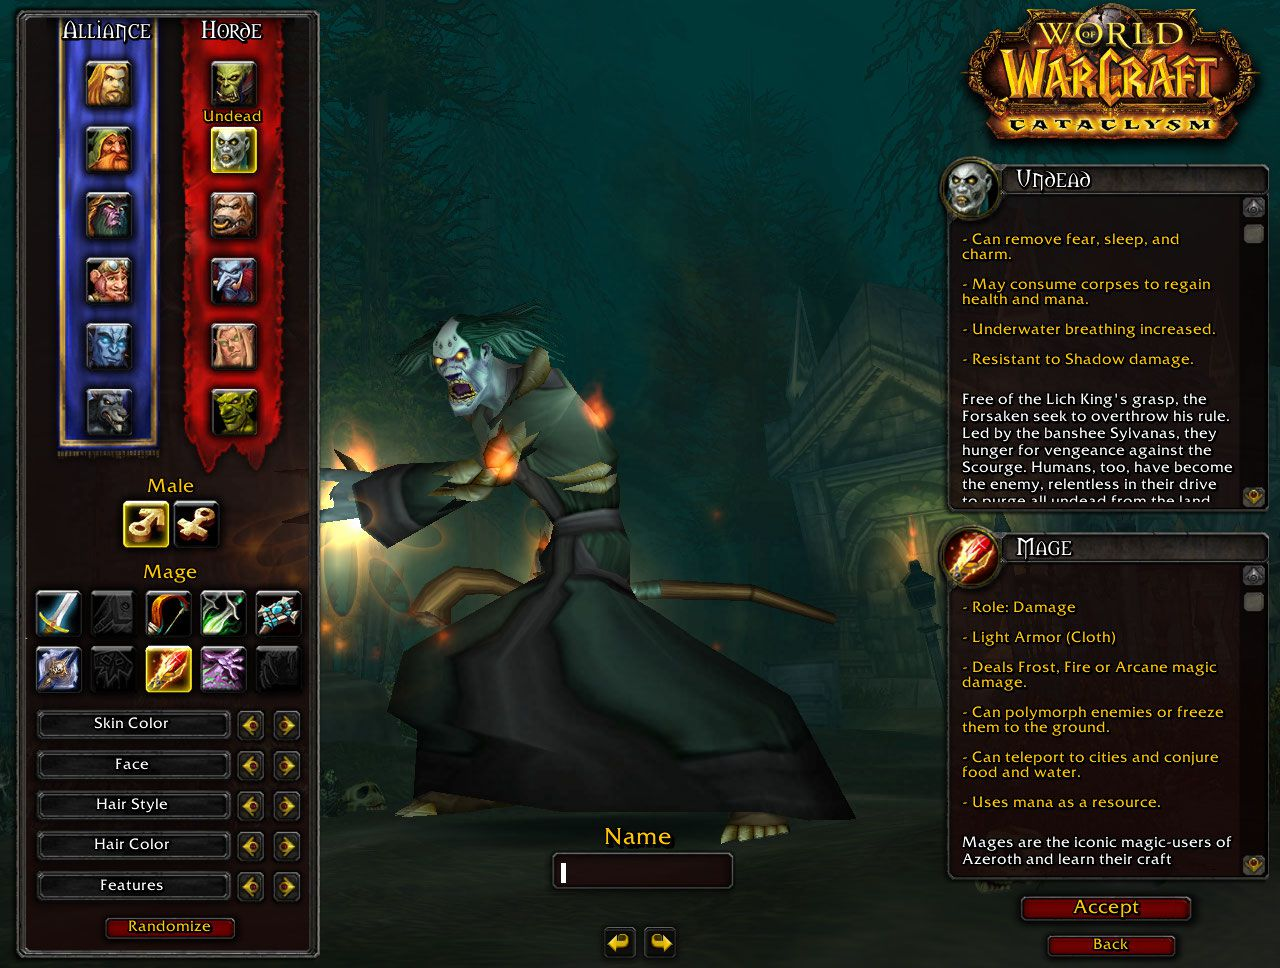 Undead Mage wow screenshot